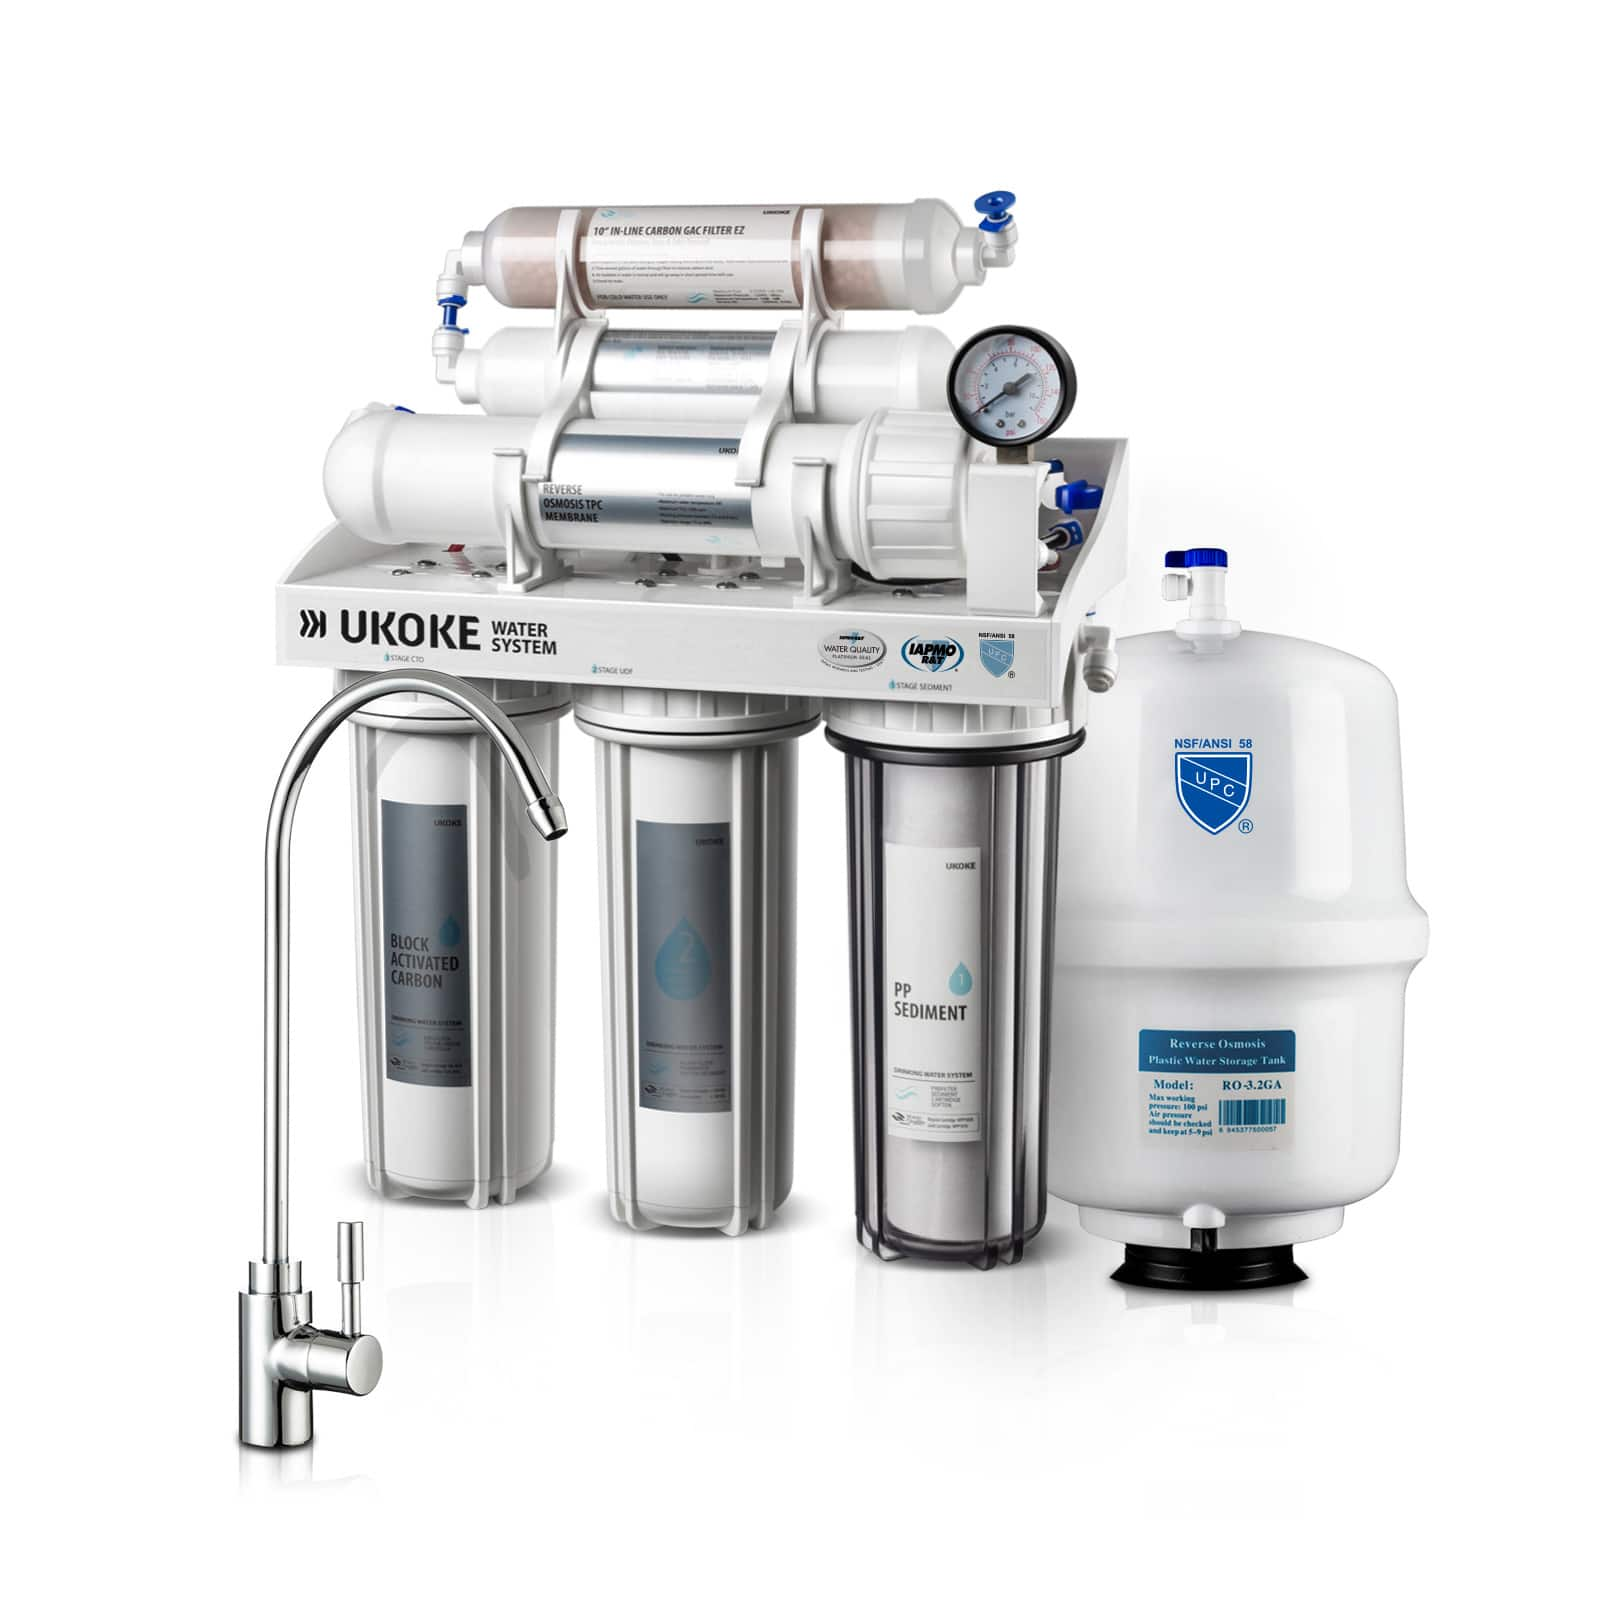 Ukoke 6 Stage Reverse Osmosis 75 GPD Water Filtration System $129 or w/ Pump $139 + Free Shipping